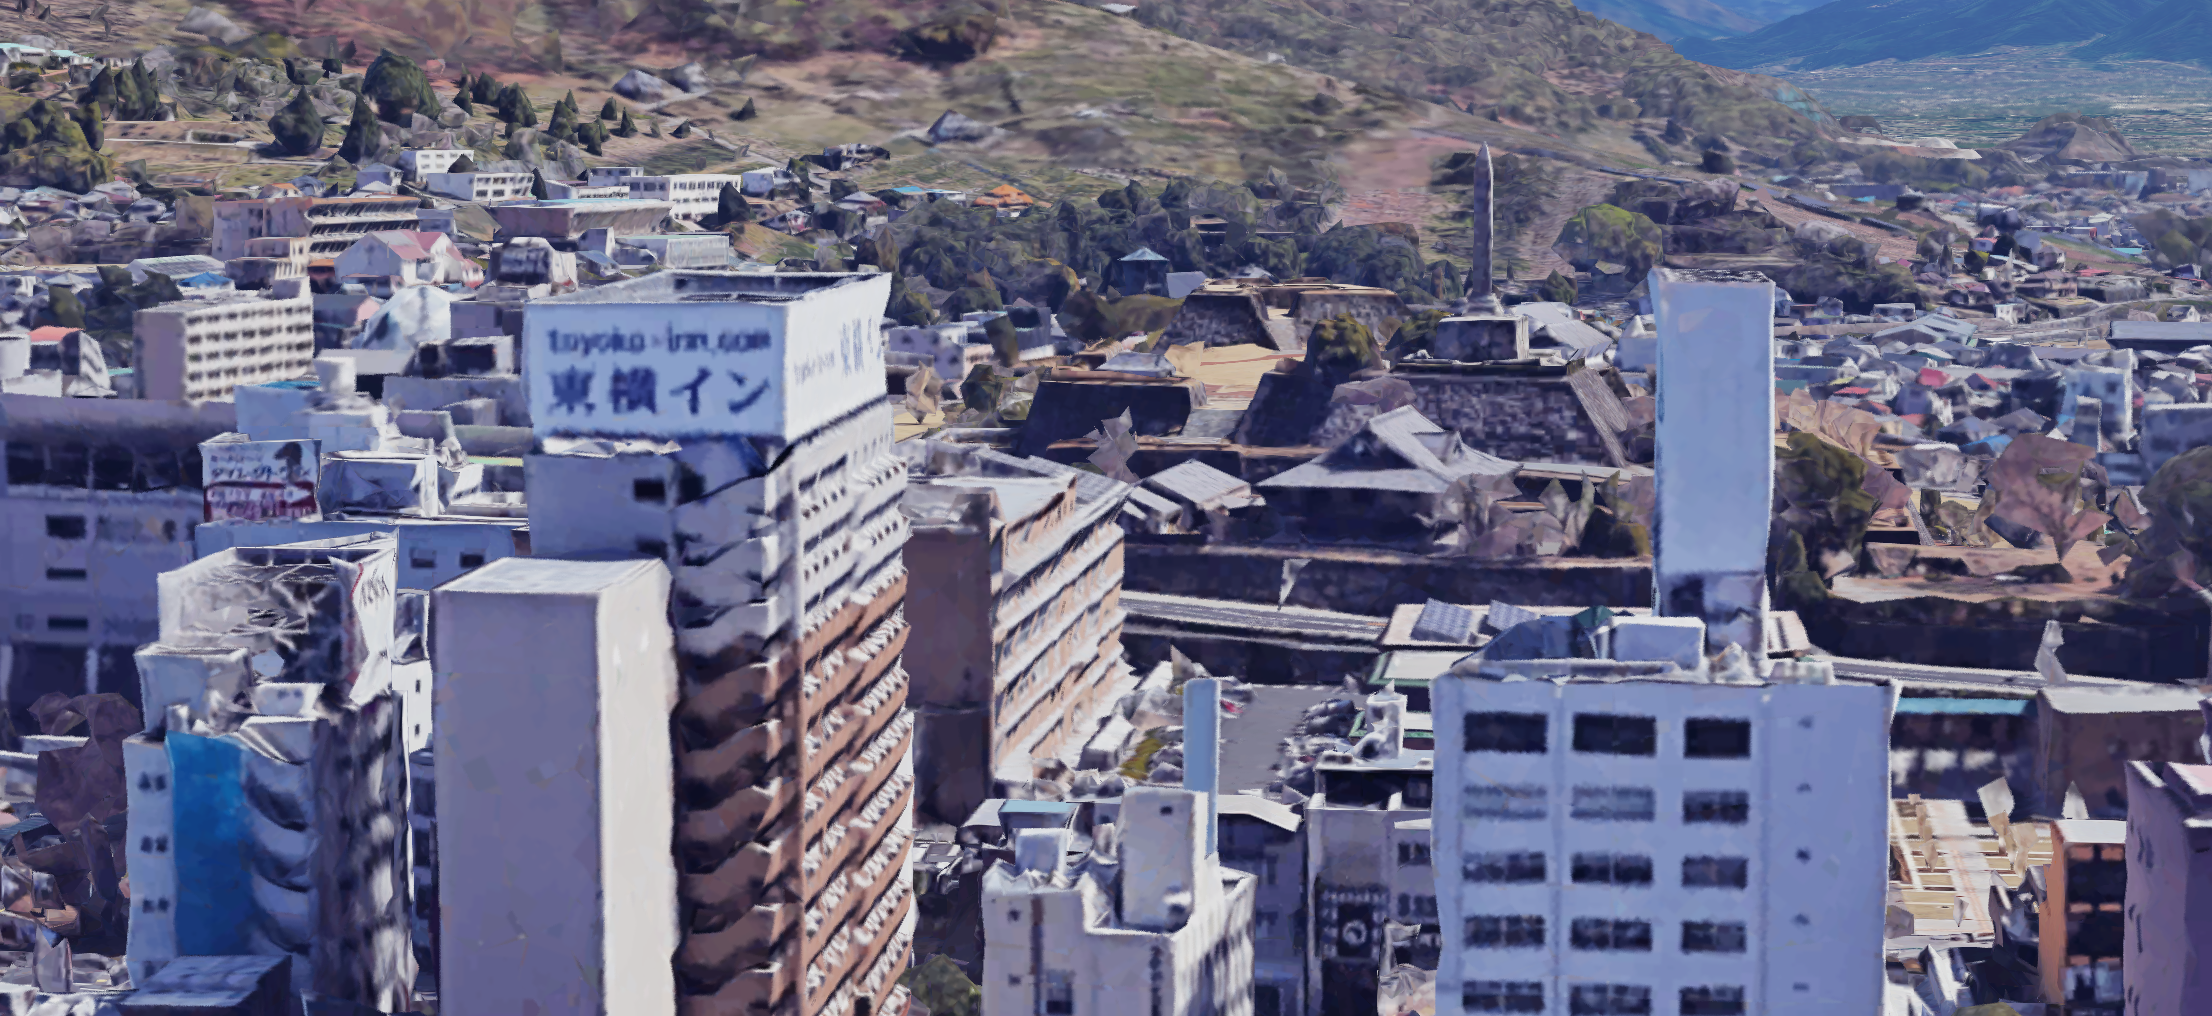 The hotel with the ruins of Kofu Castle behind it